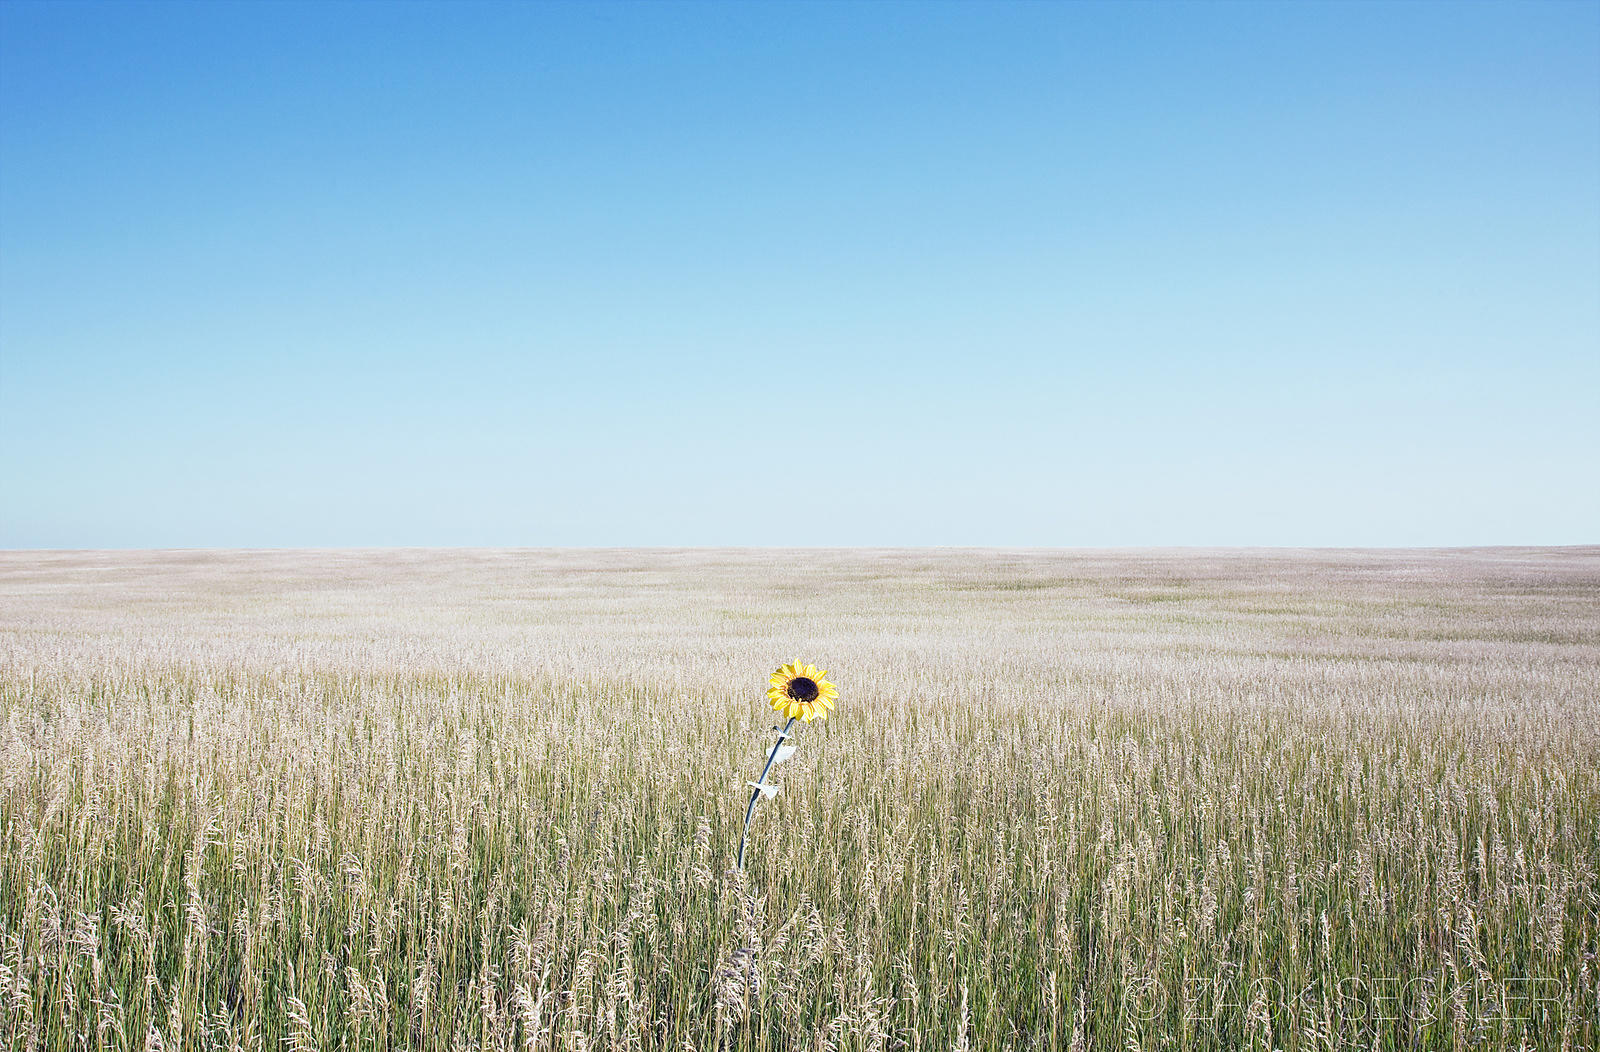 sunflower in the middle of a field of grass